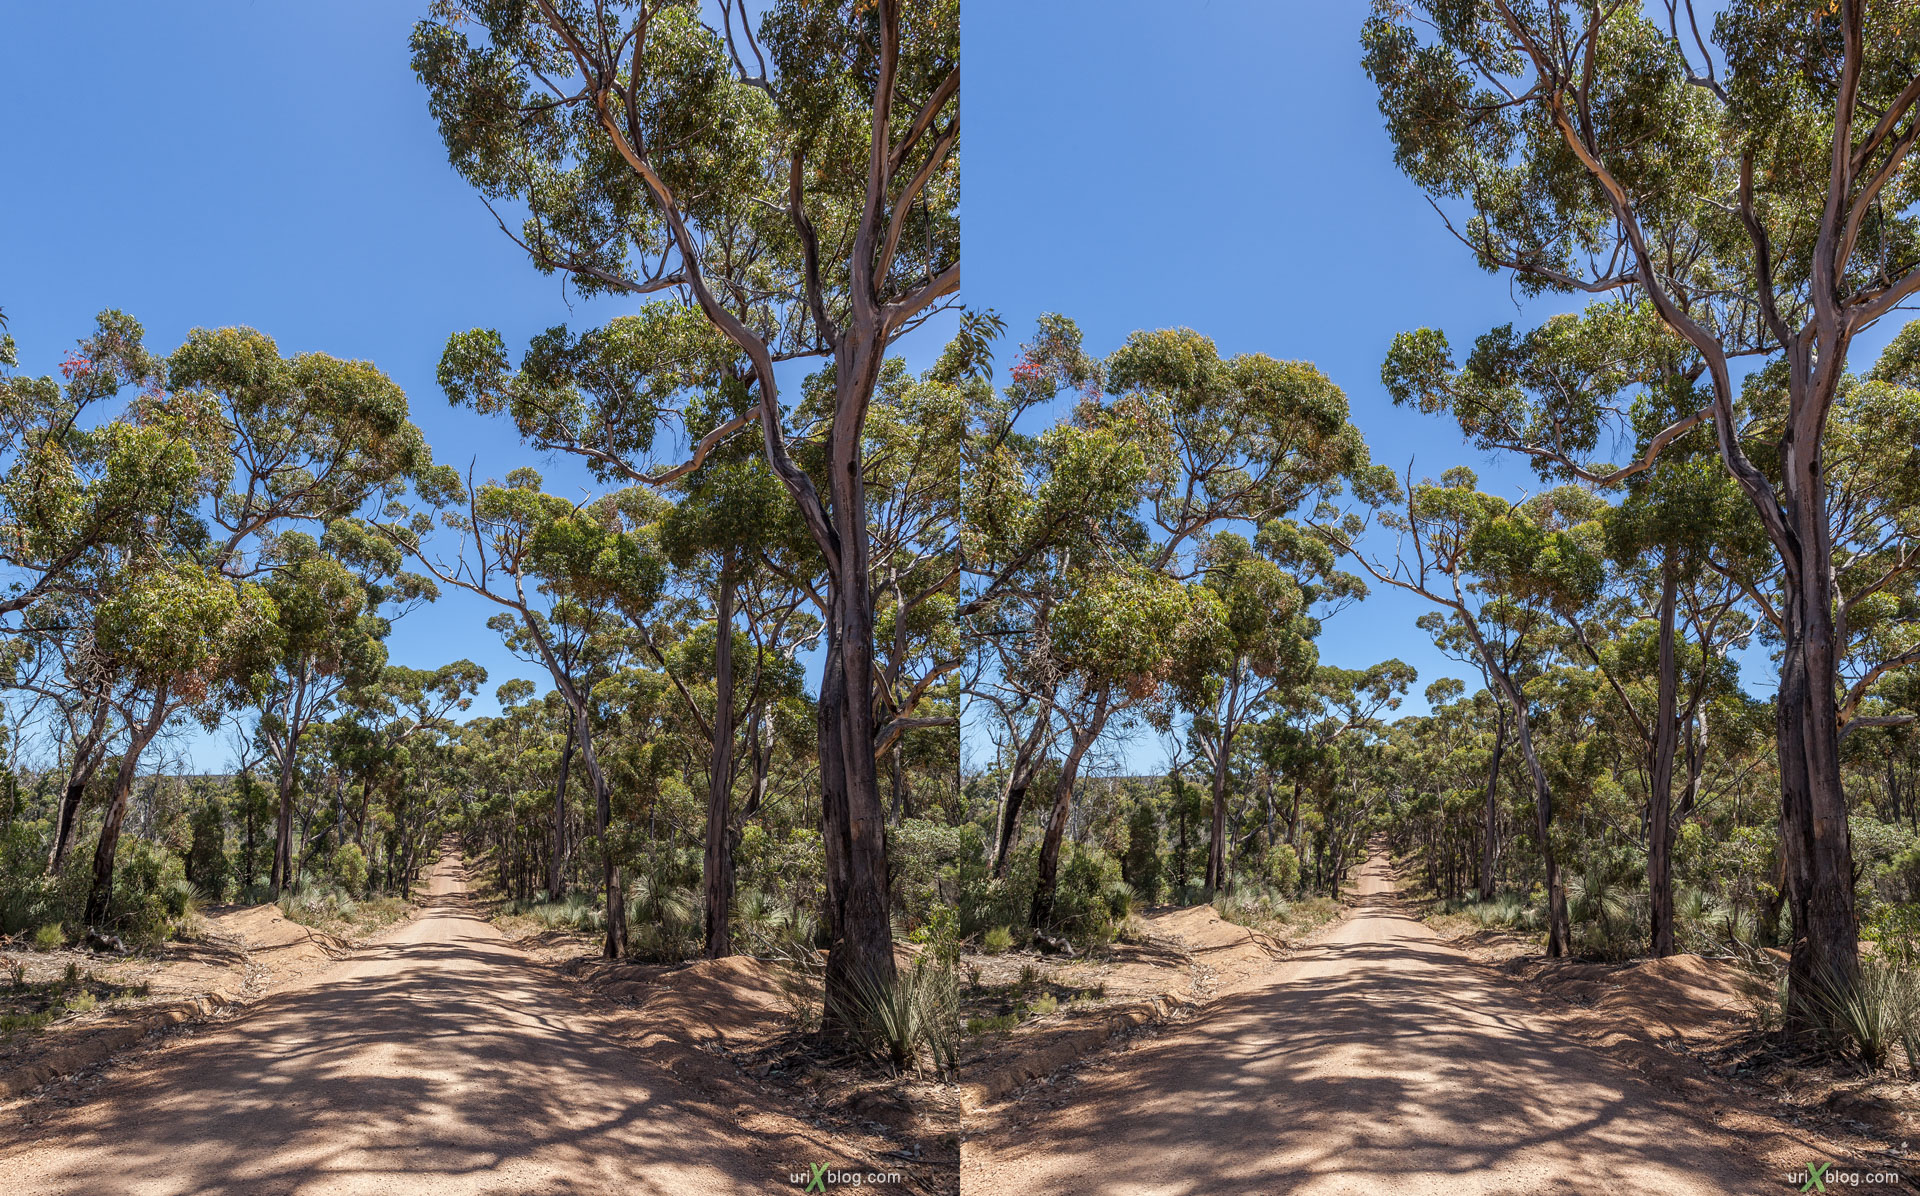 forest, road, Ravine Des Casoars Wilderness Protection Area, Kangaroo Island, Australia, 3D, stereo pair, cross-eyed, crossview, cross view stereo pair, stereoscopic, 2011